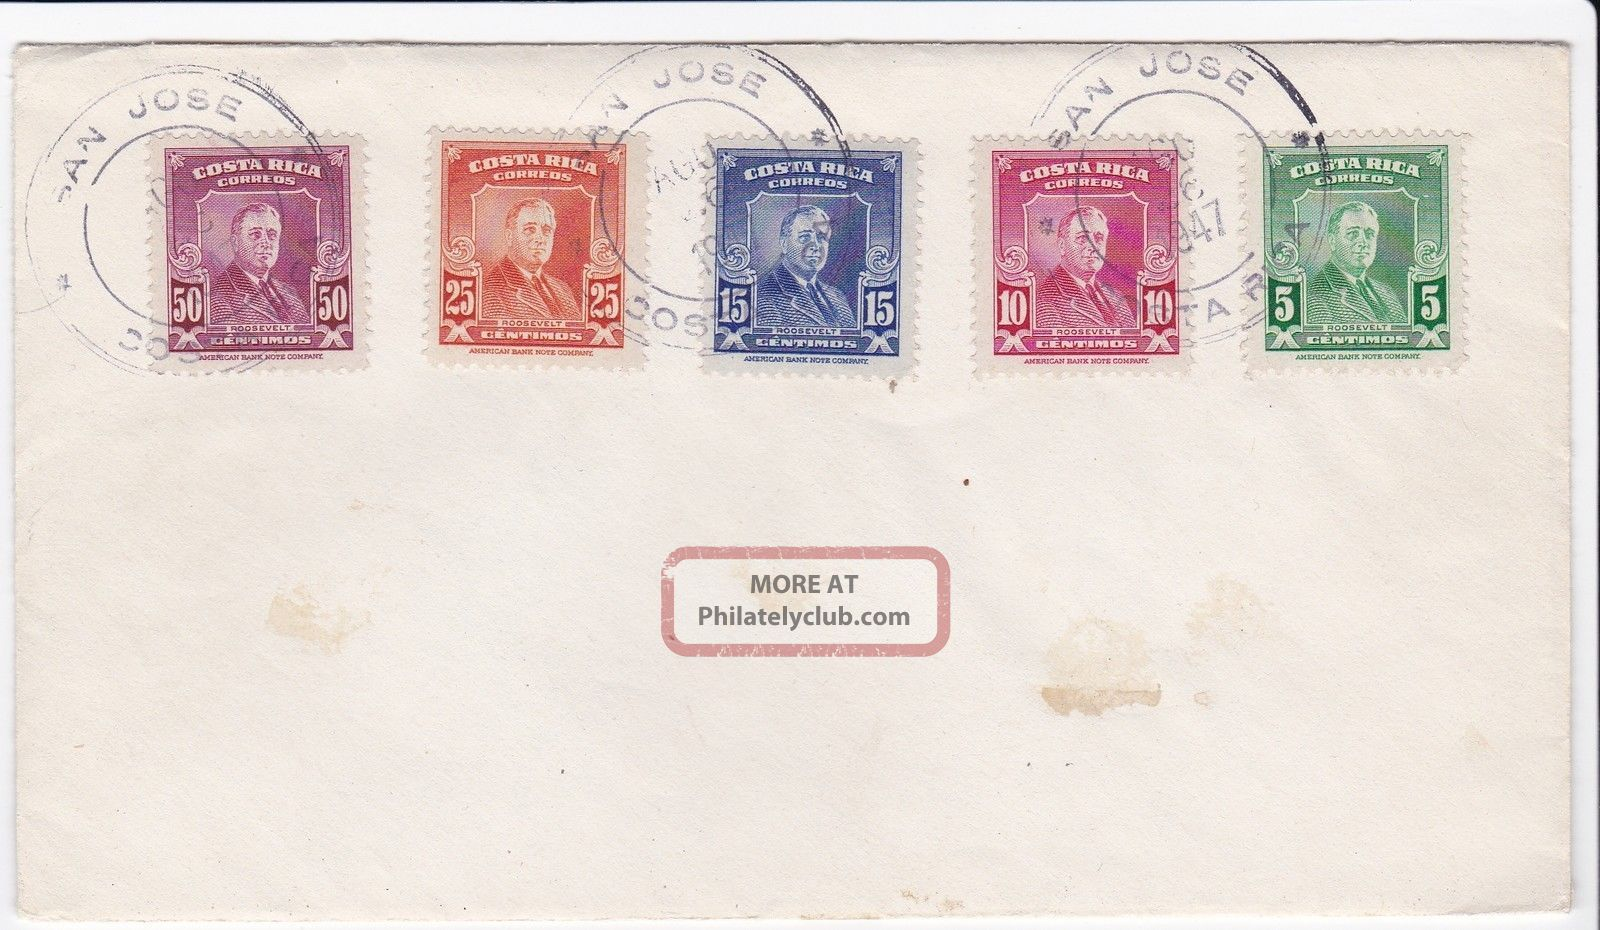 First Day Cover,  Costa Rica,  1947,  Roosevelt Commemoratives,  Sc 251 - 255 Latin America photo